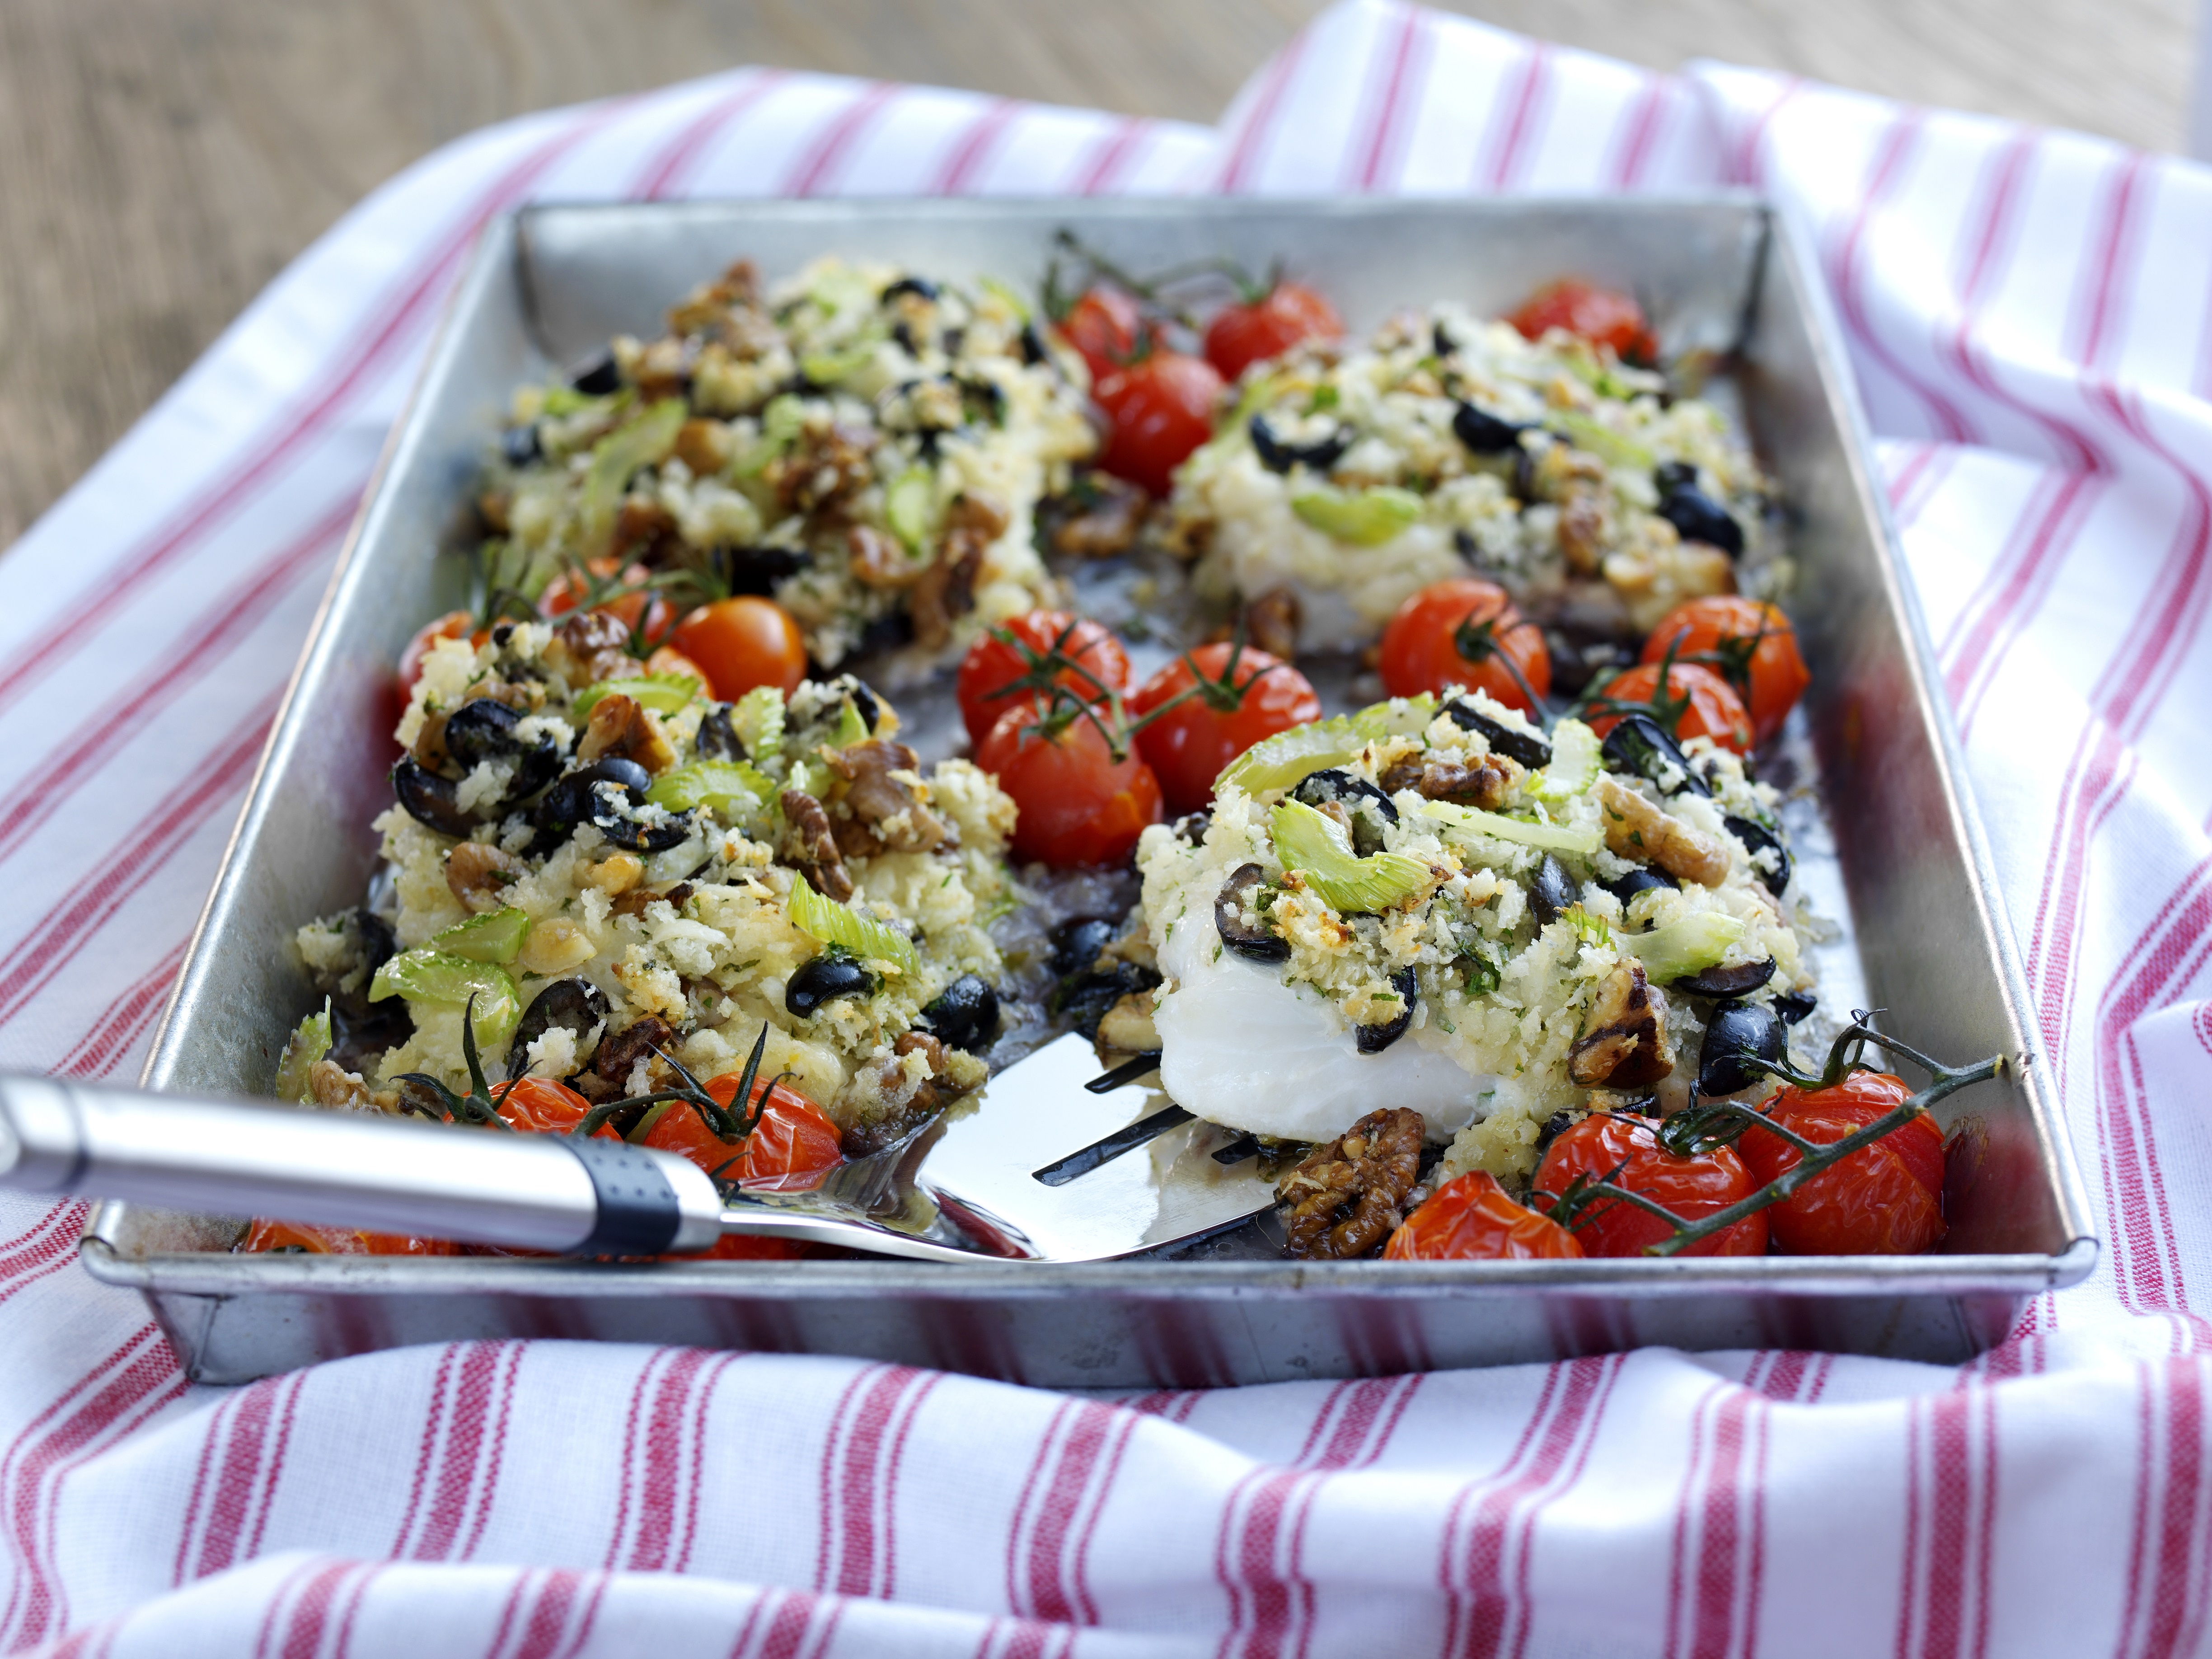 ... Black Olive Stuffing with Roasted Cherry Tomatoes - Love The Crunch